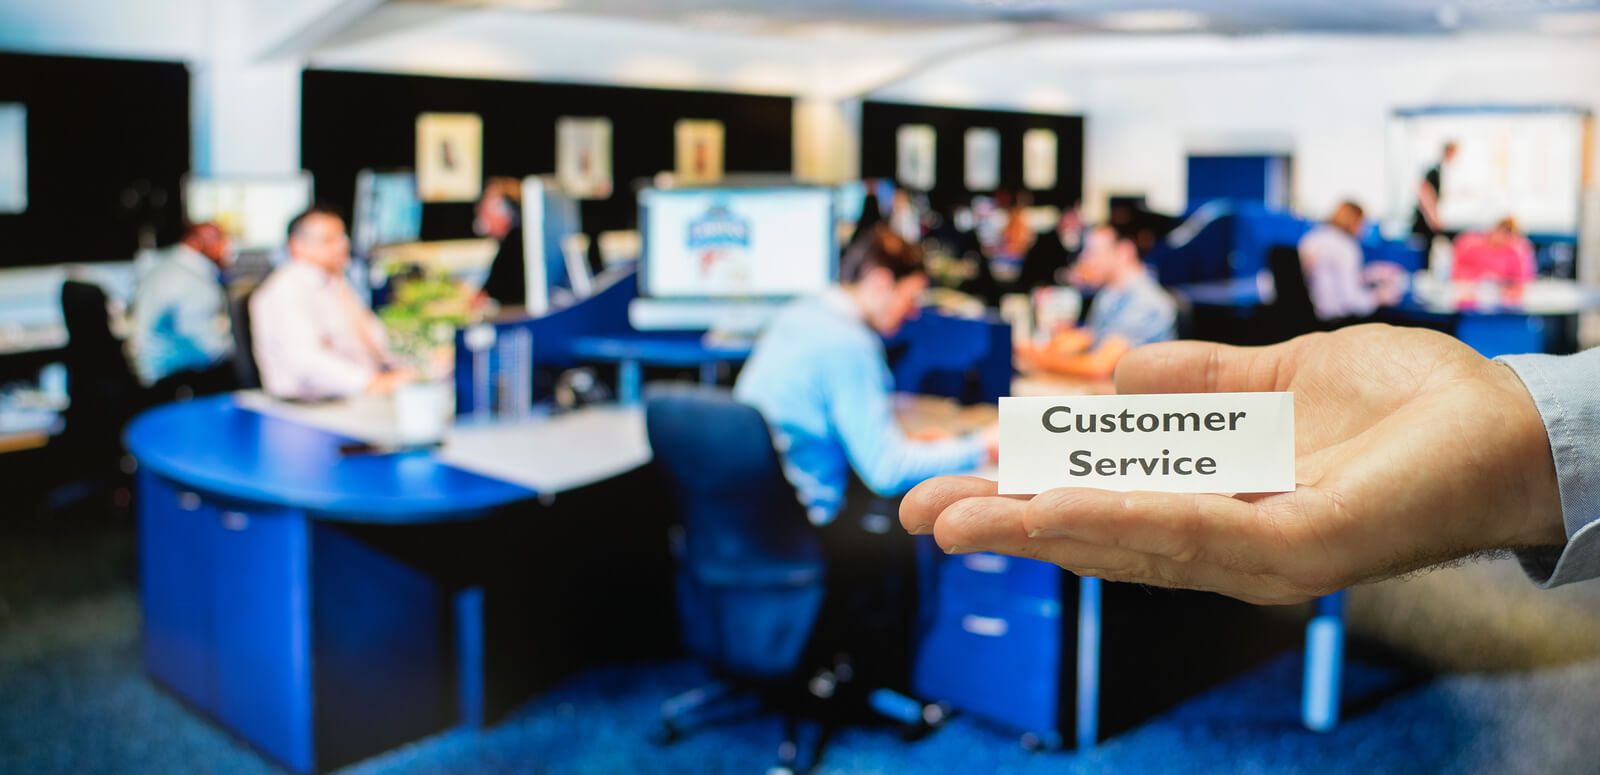 4 Top Ways to Maintain Consistency in Customer Service